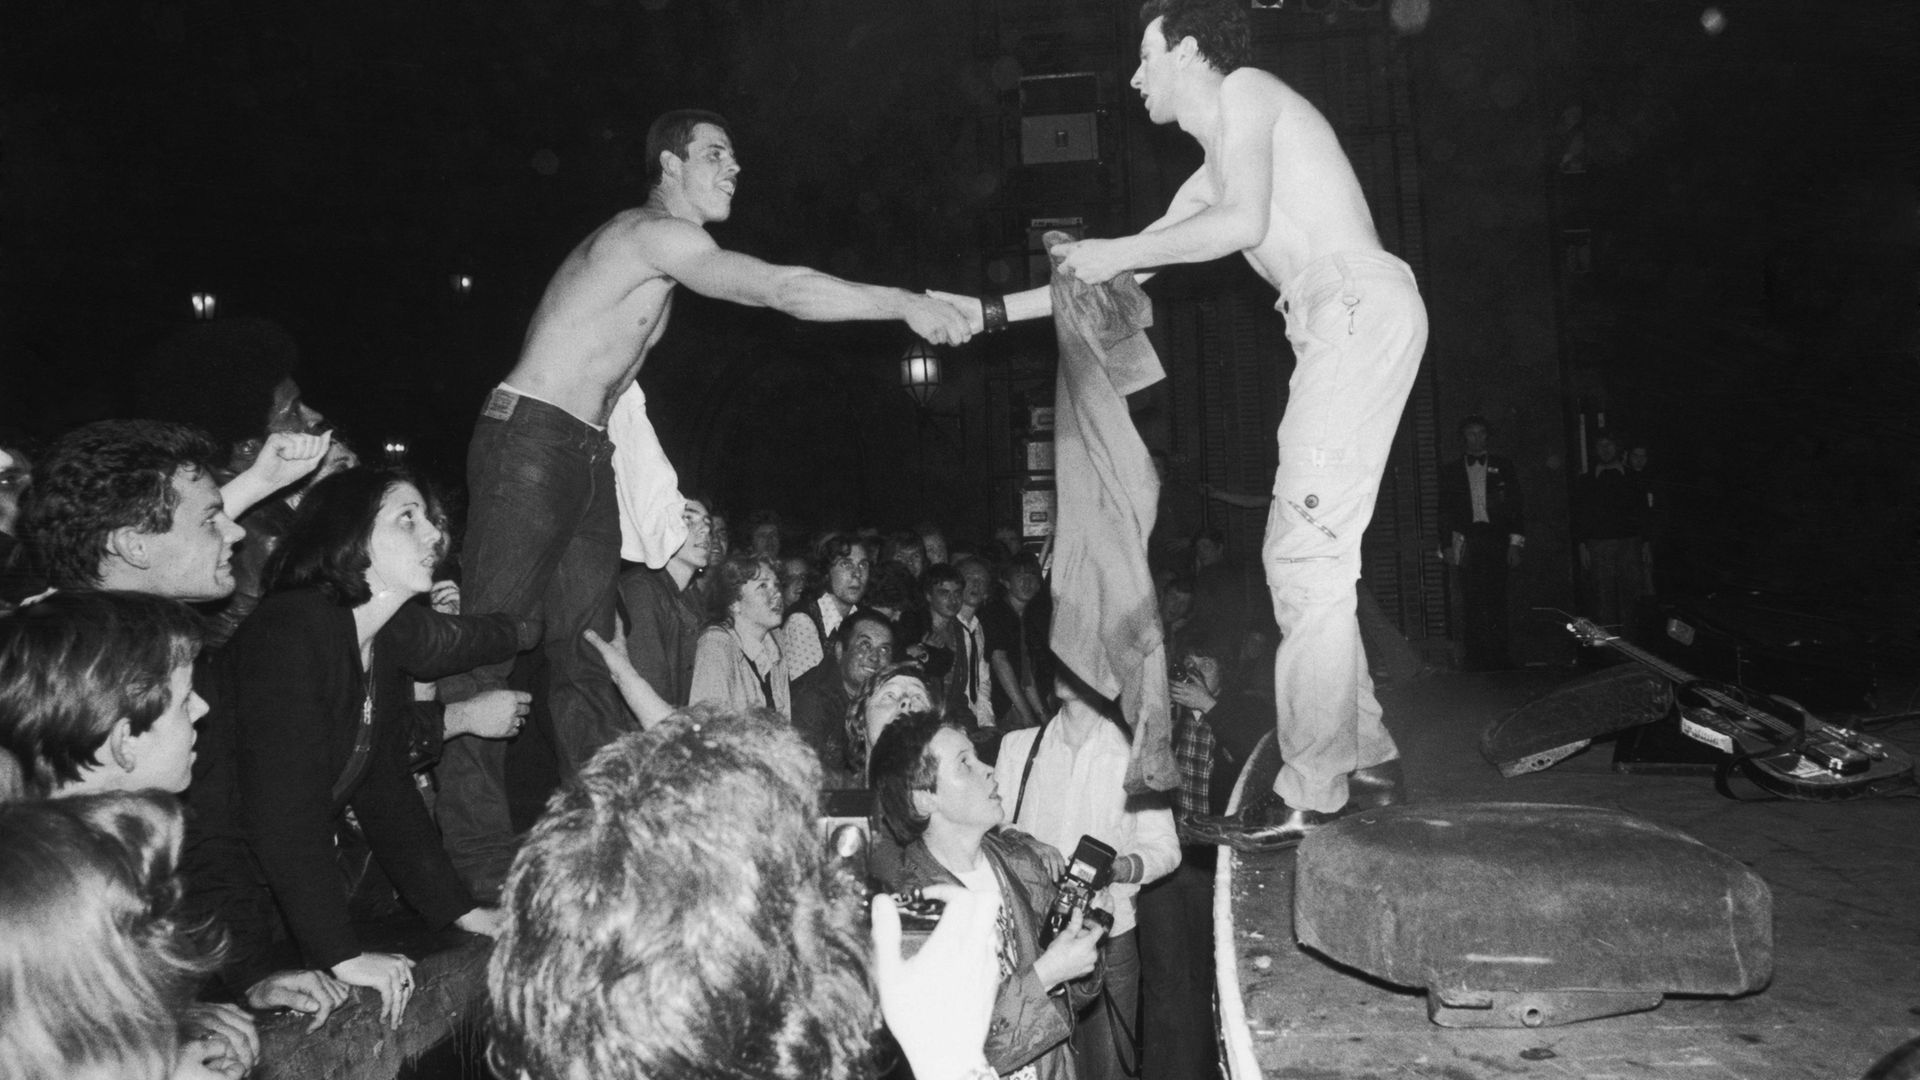 Joe Strummer (1952 - 2002), lead singer of punk rock band The Clash, exchanges shirts with a fan at The Rainbow Theatre, London - Credit: Getty Images